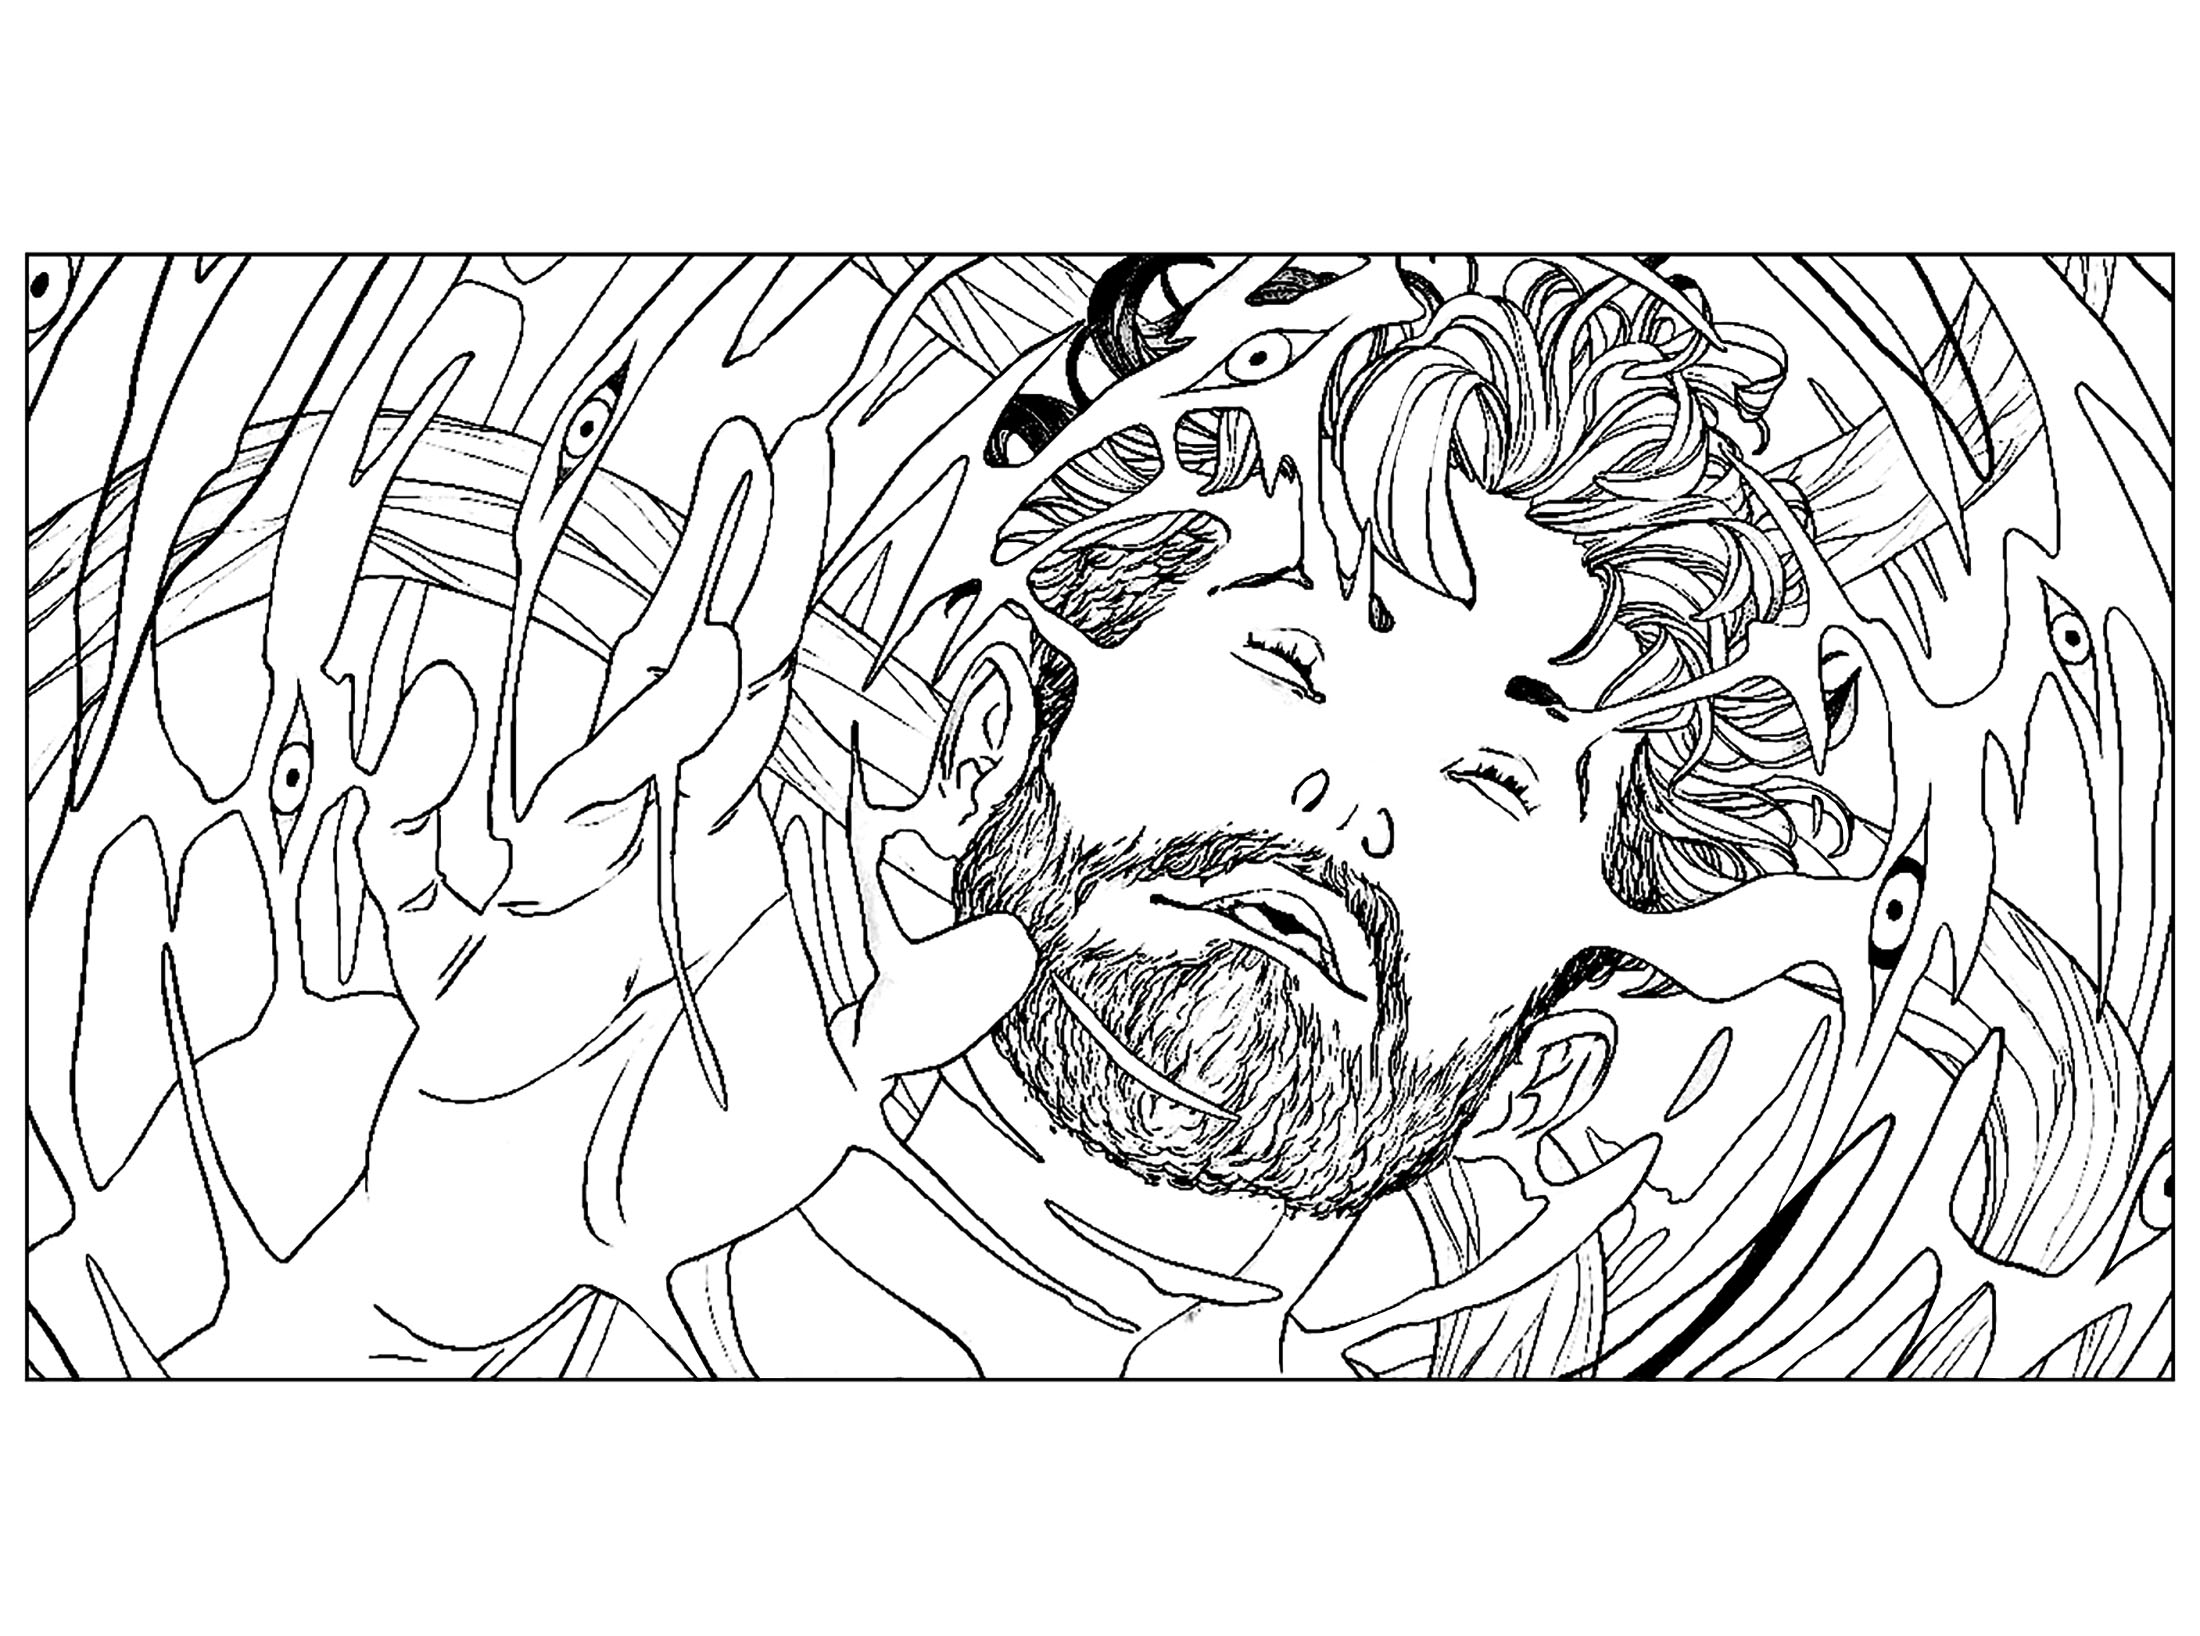 Psychedelic man - Psychedelic Adult Coloring Pages